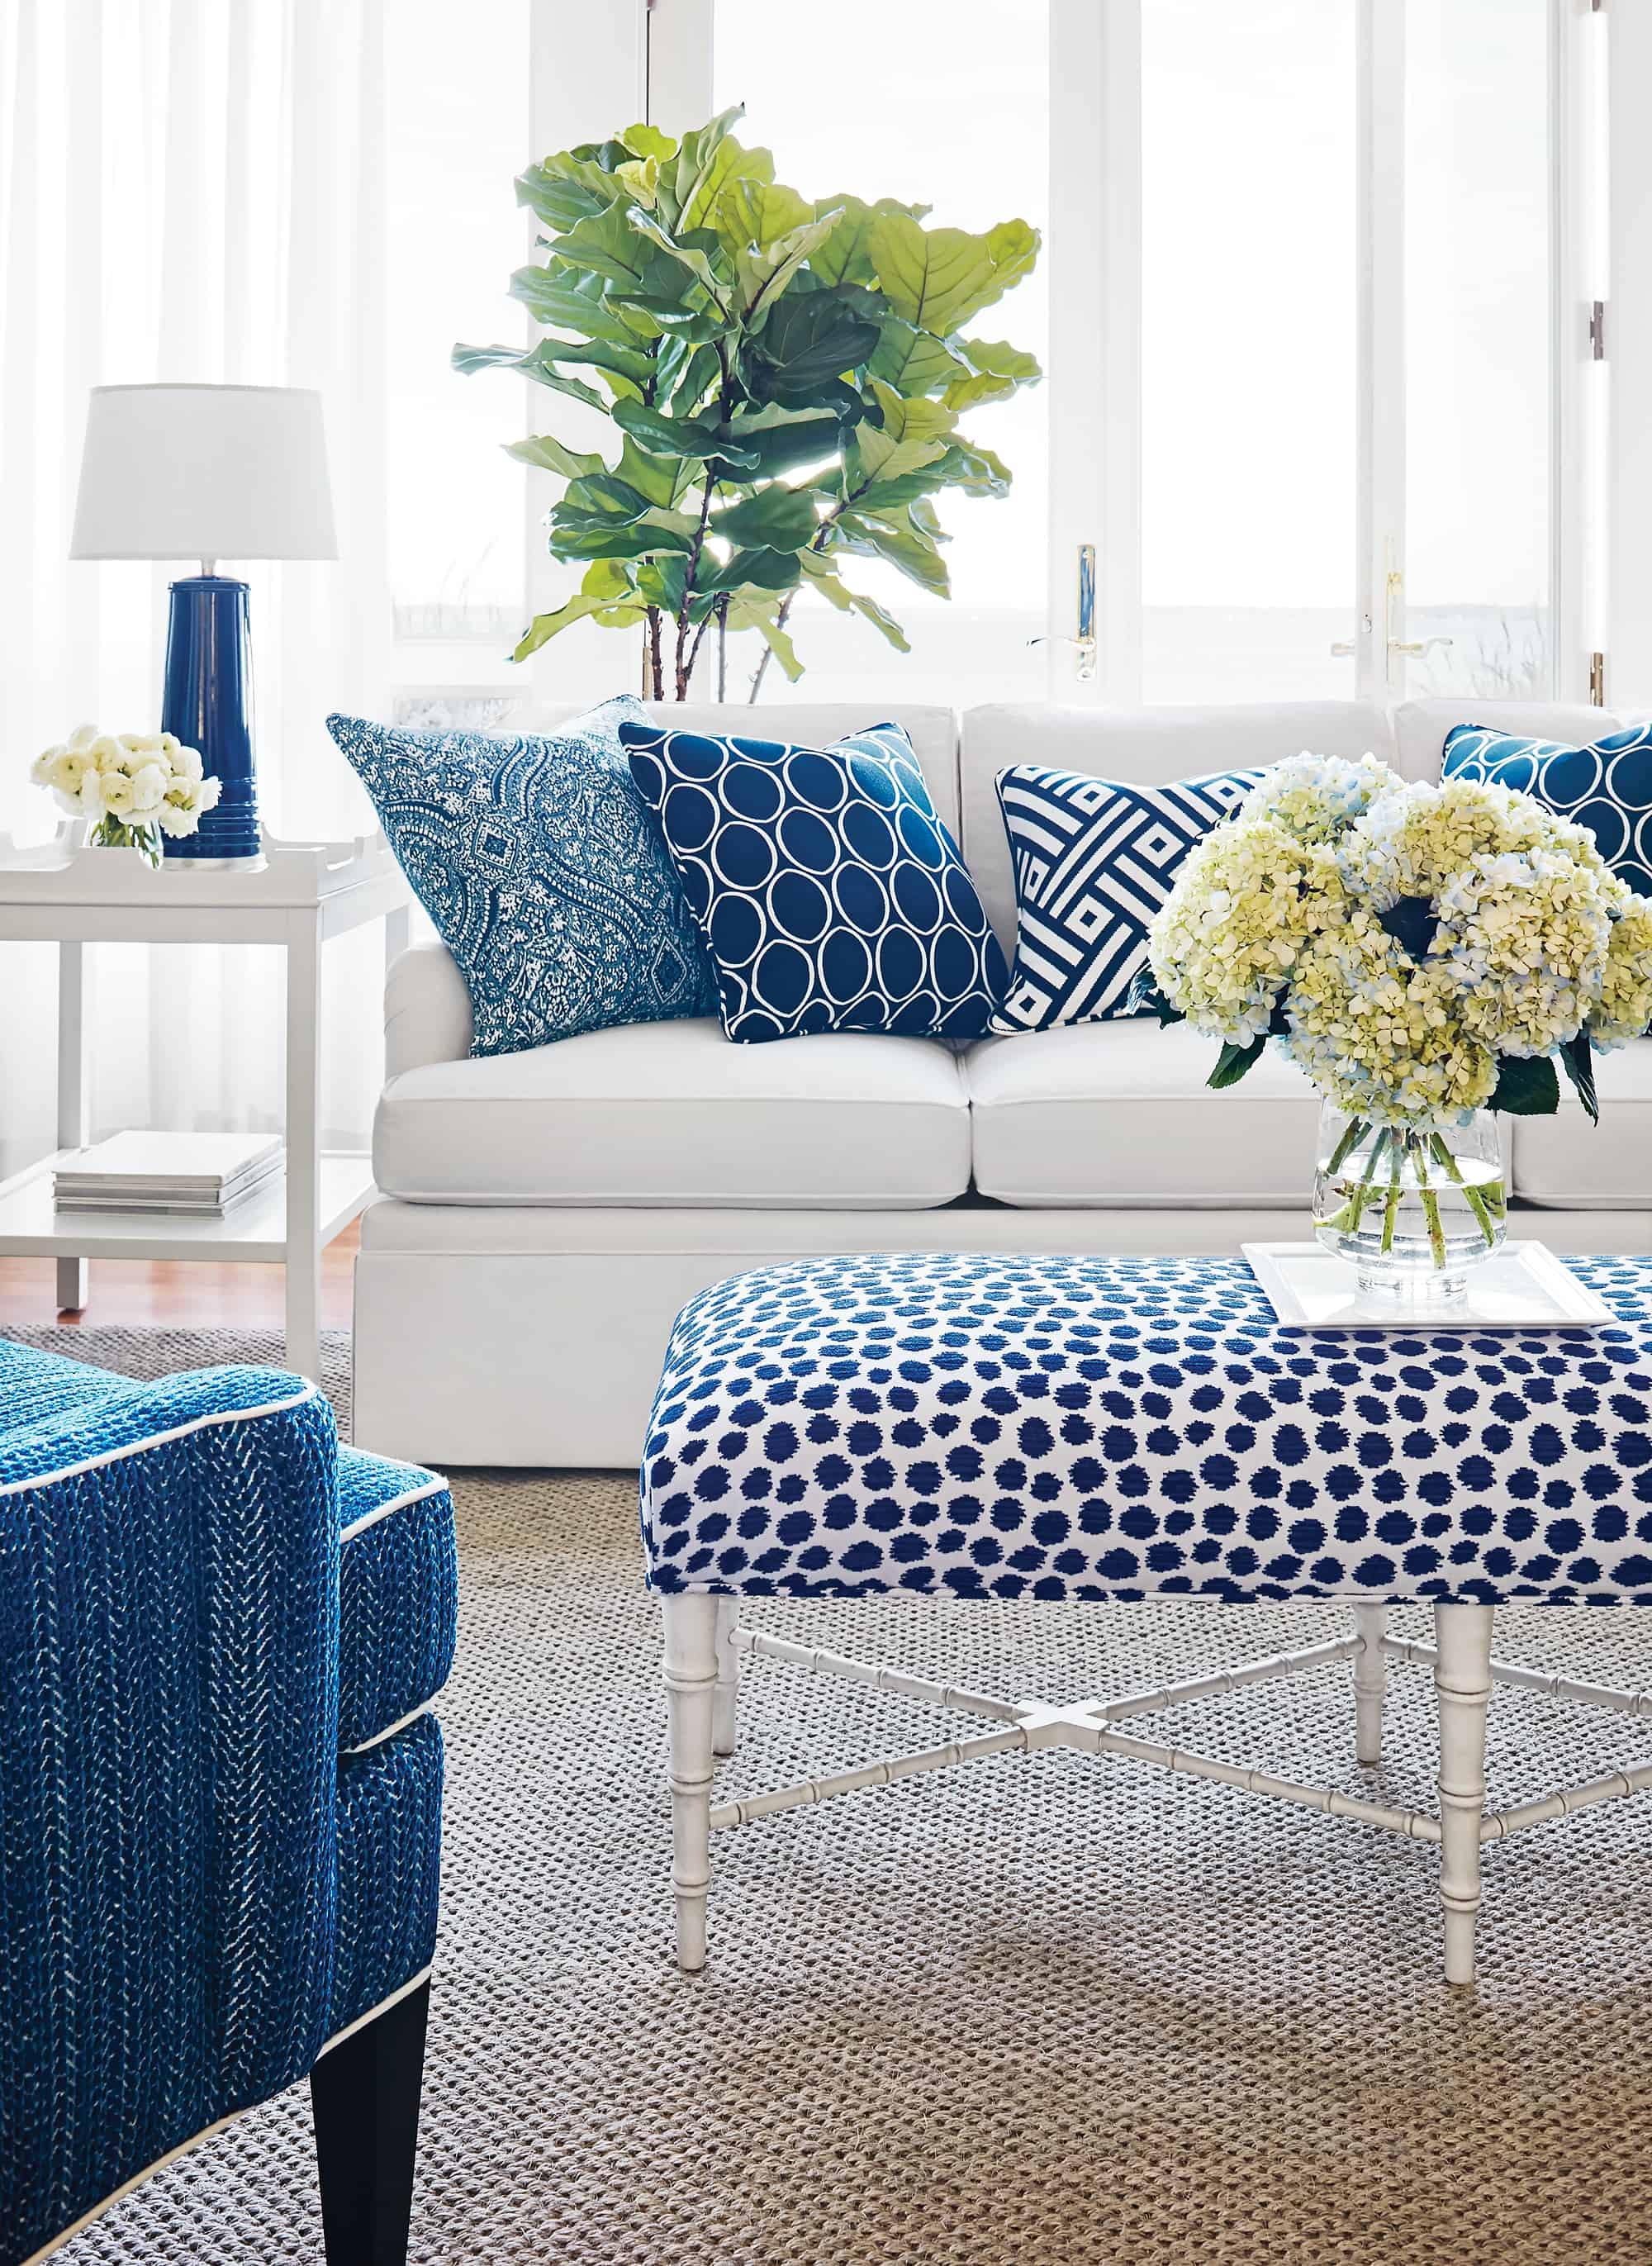 mix and match colorful pattern pillows